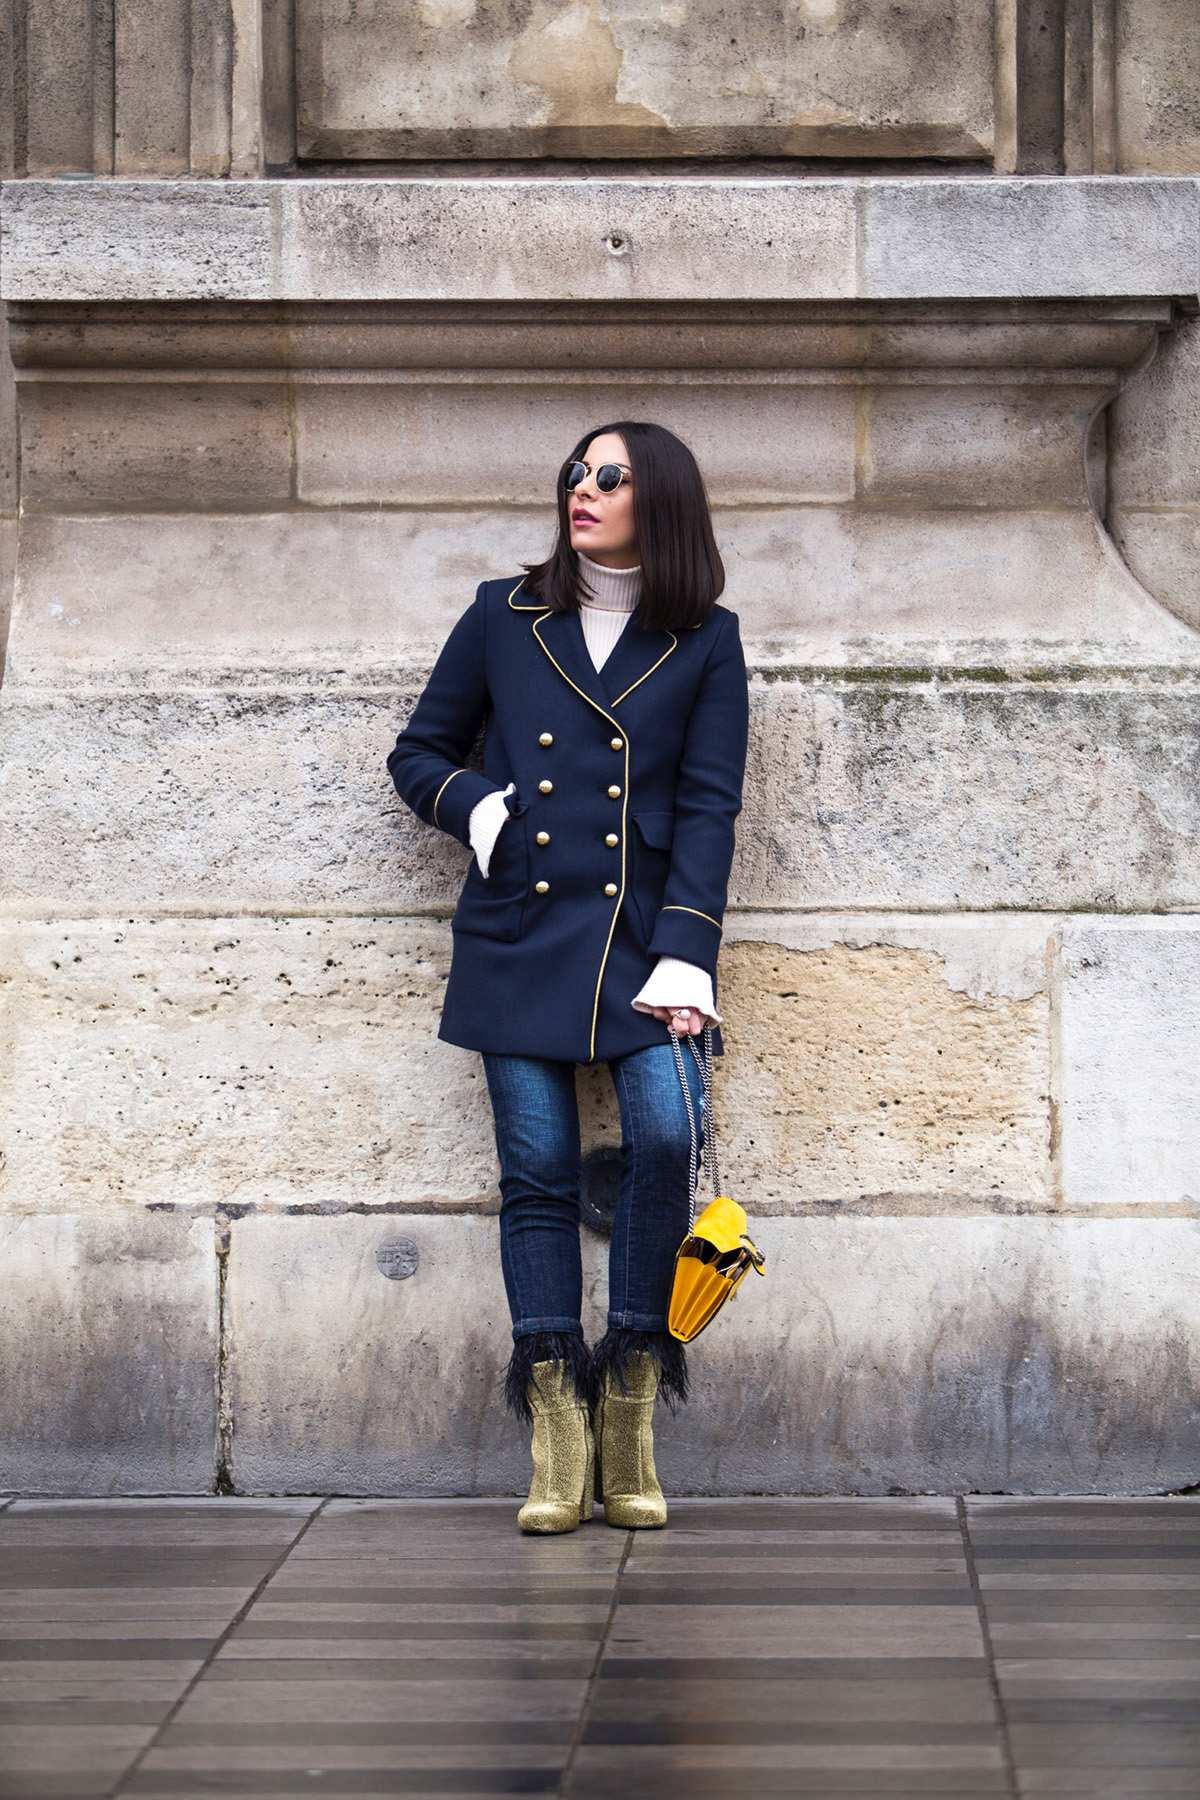 Paris street style with military coat by Fashion & Lifestyle blogger Stella Asteria